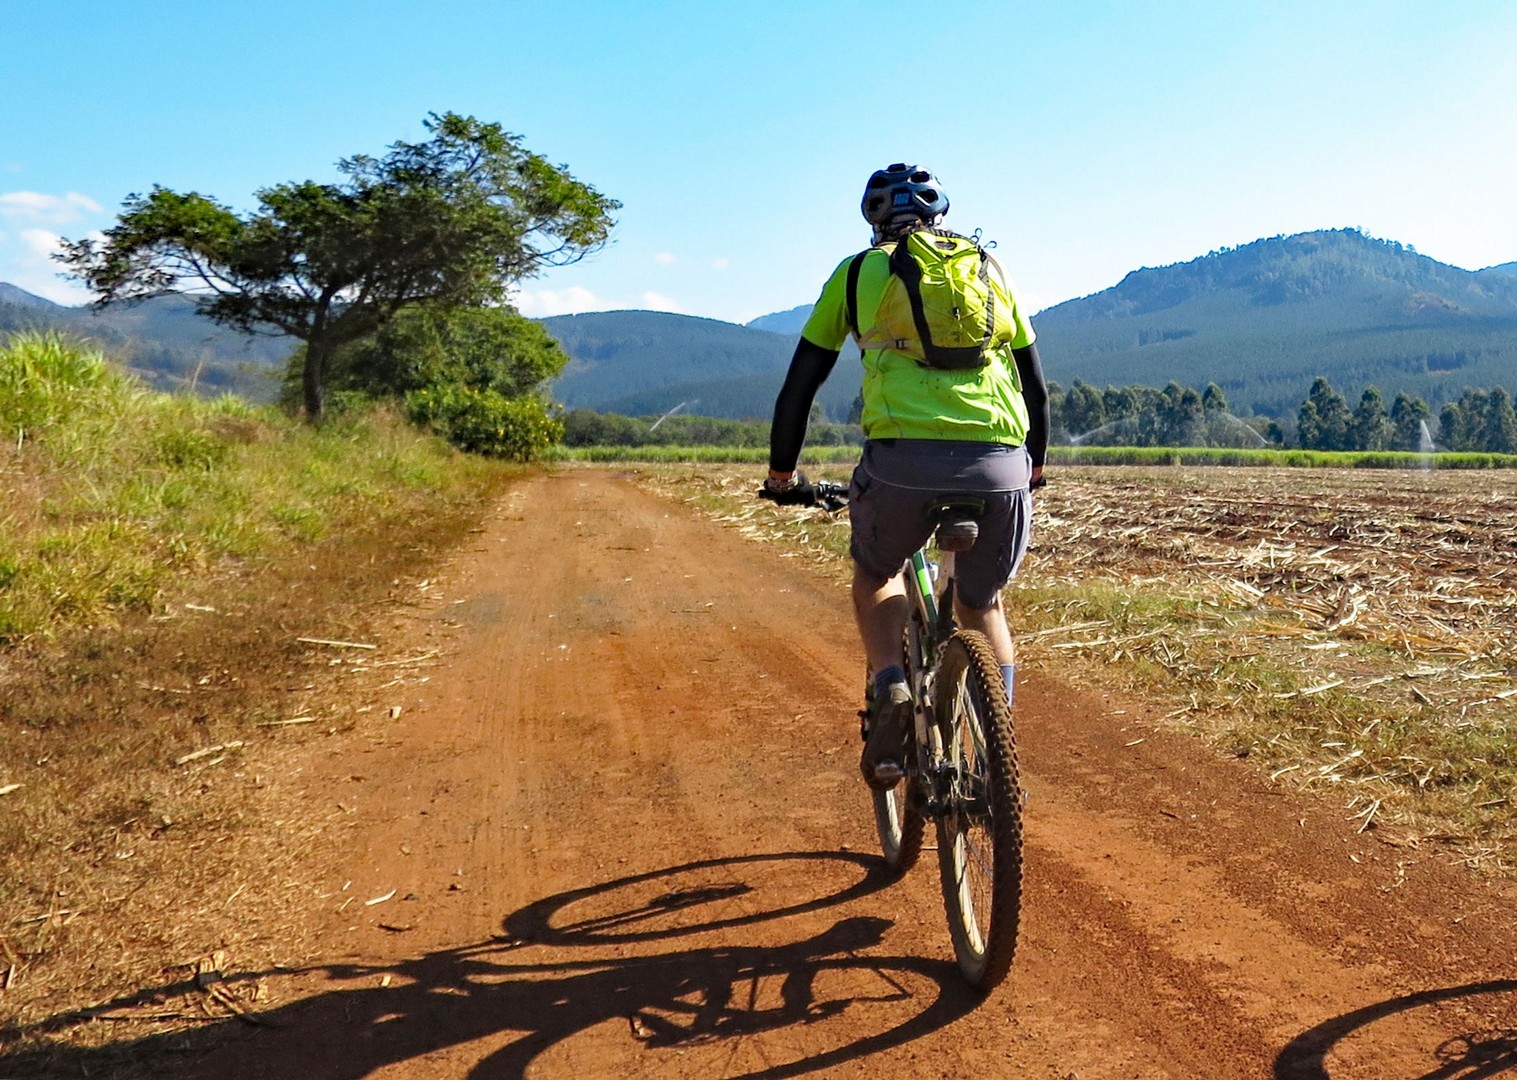 south-africa-africa-swaziland-cycling-holiday.jpg - Eswatini (Swaziland) - Cycling Safari - Cycling Adventures